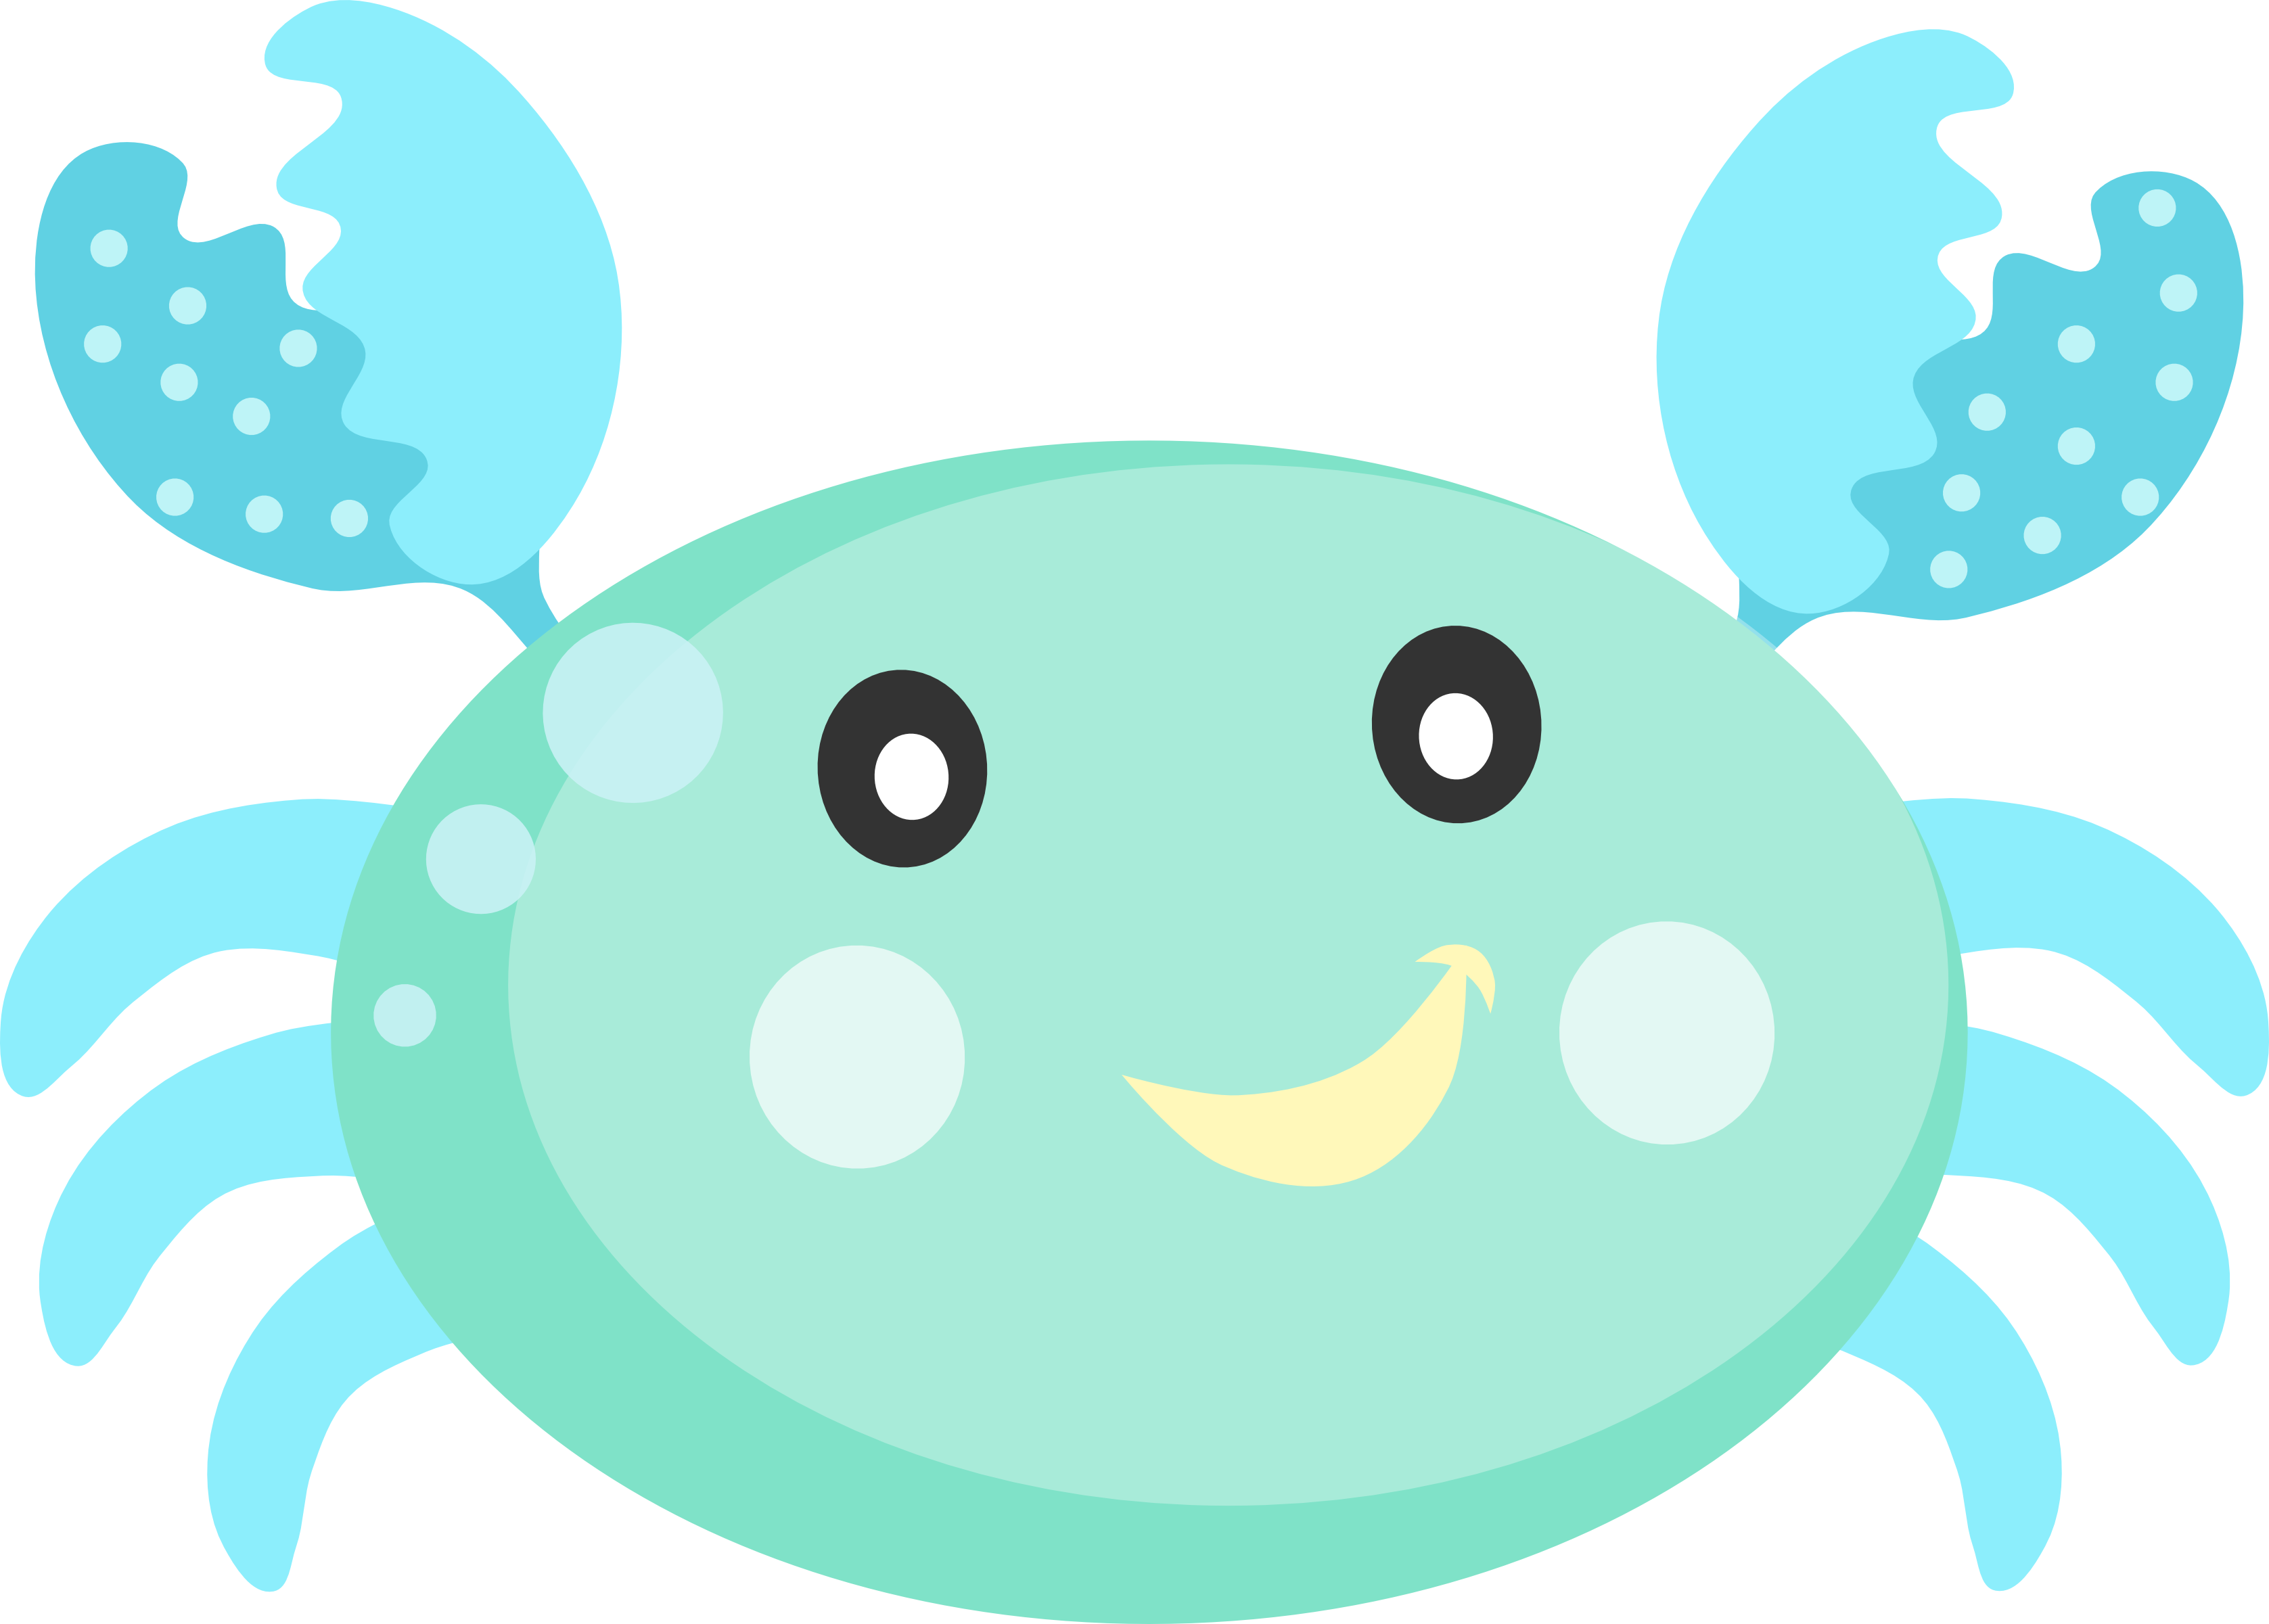 Cute clipart stingray, Cute stingray Transparent FREE for.